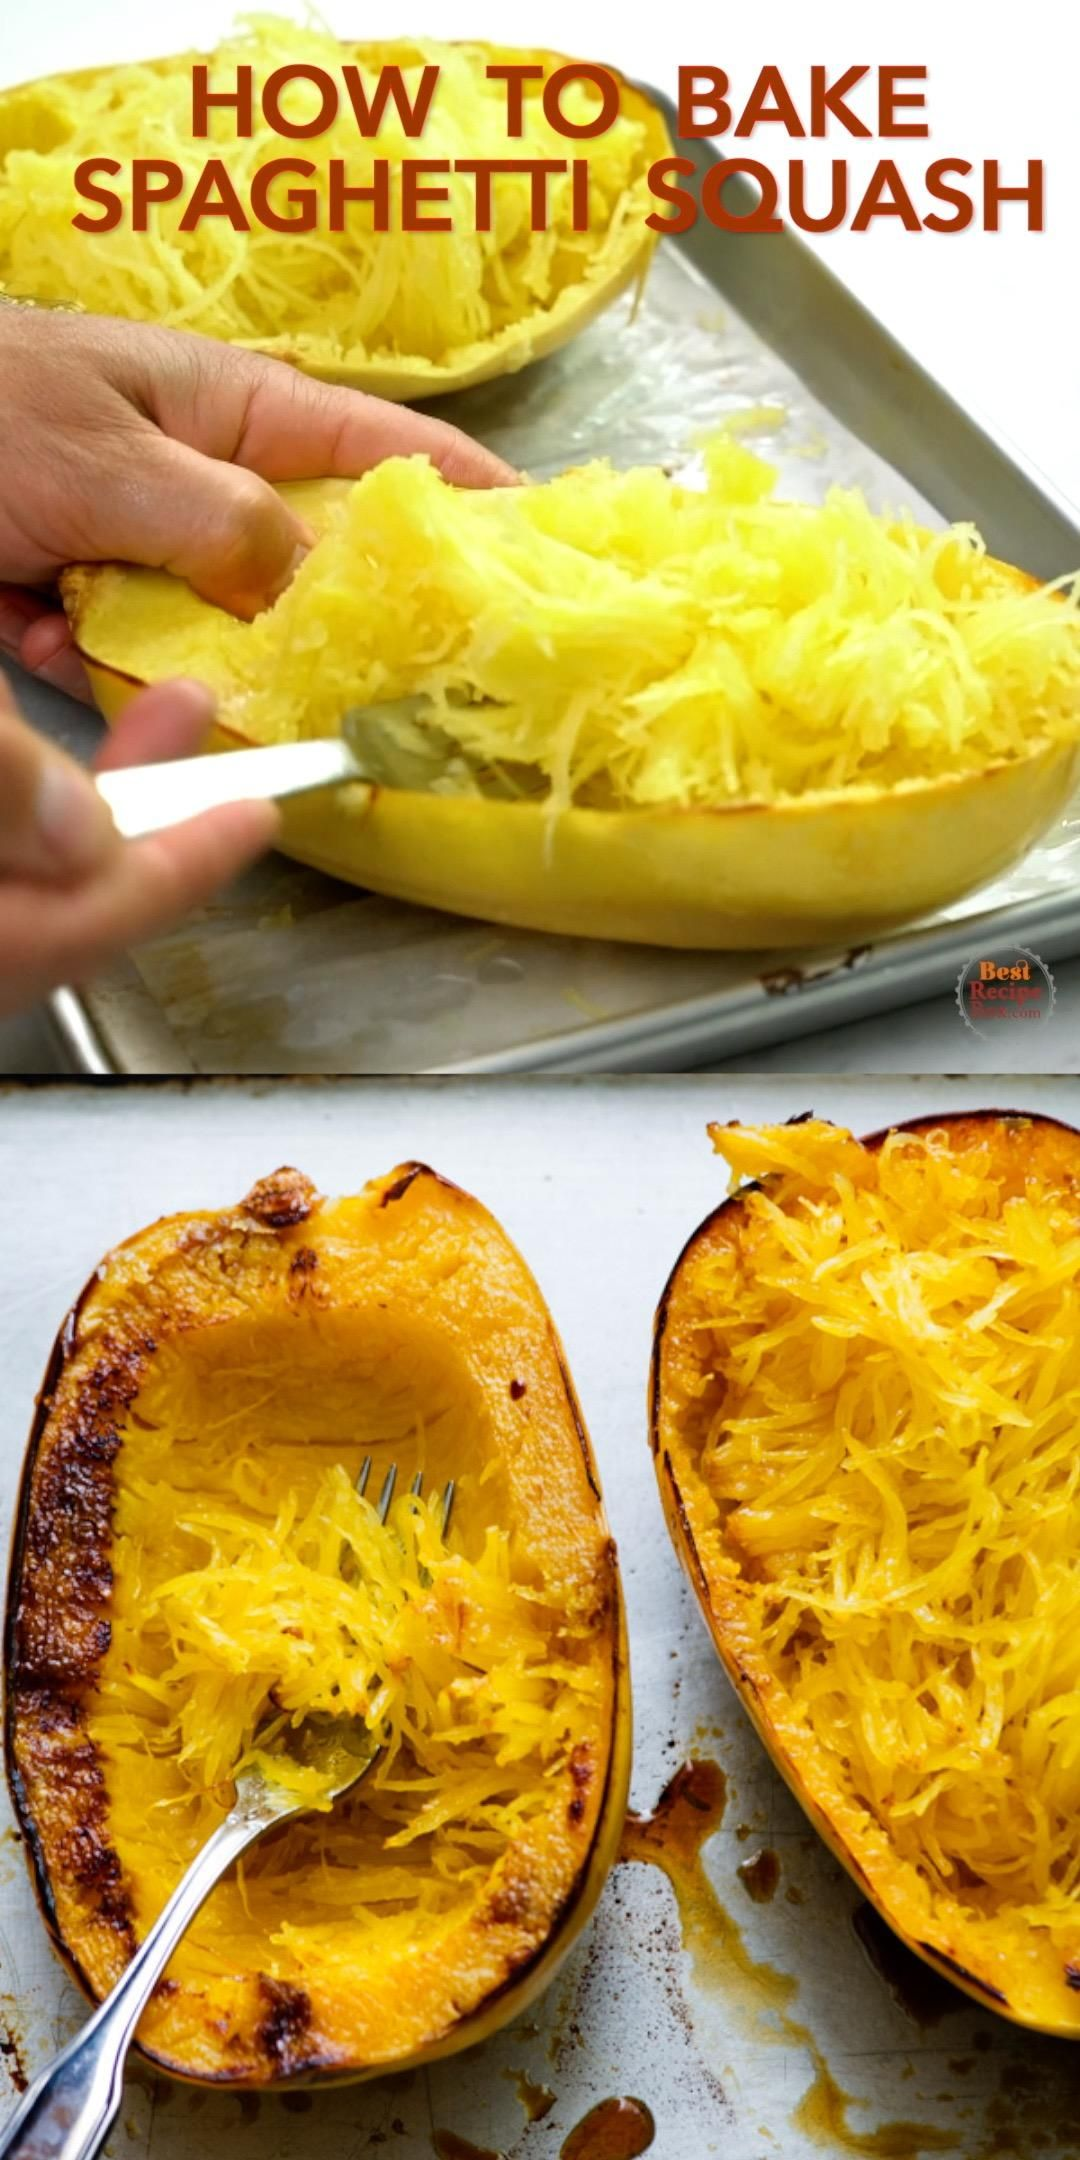 How to Roast or Bake Spaghetti Squash Recipe